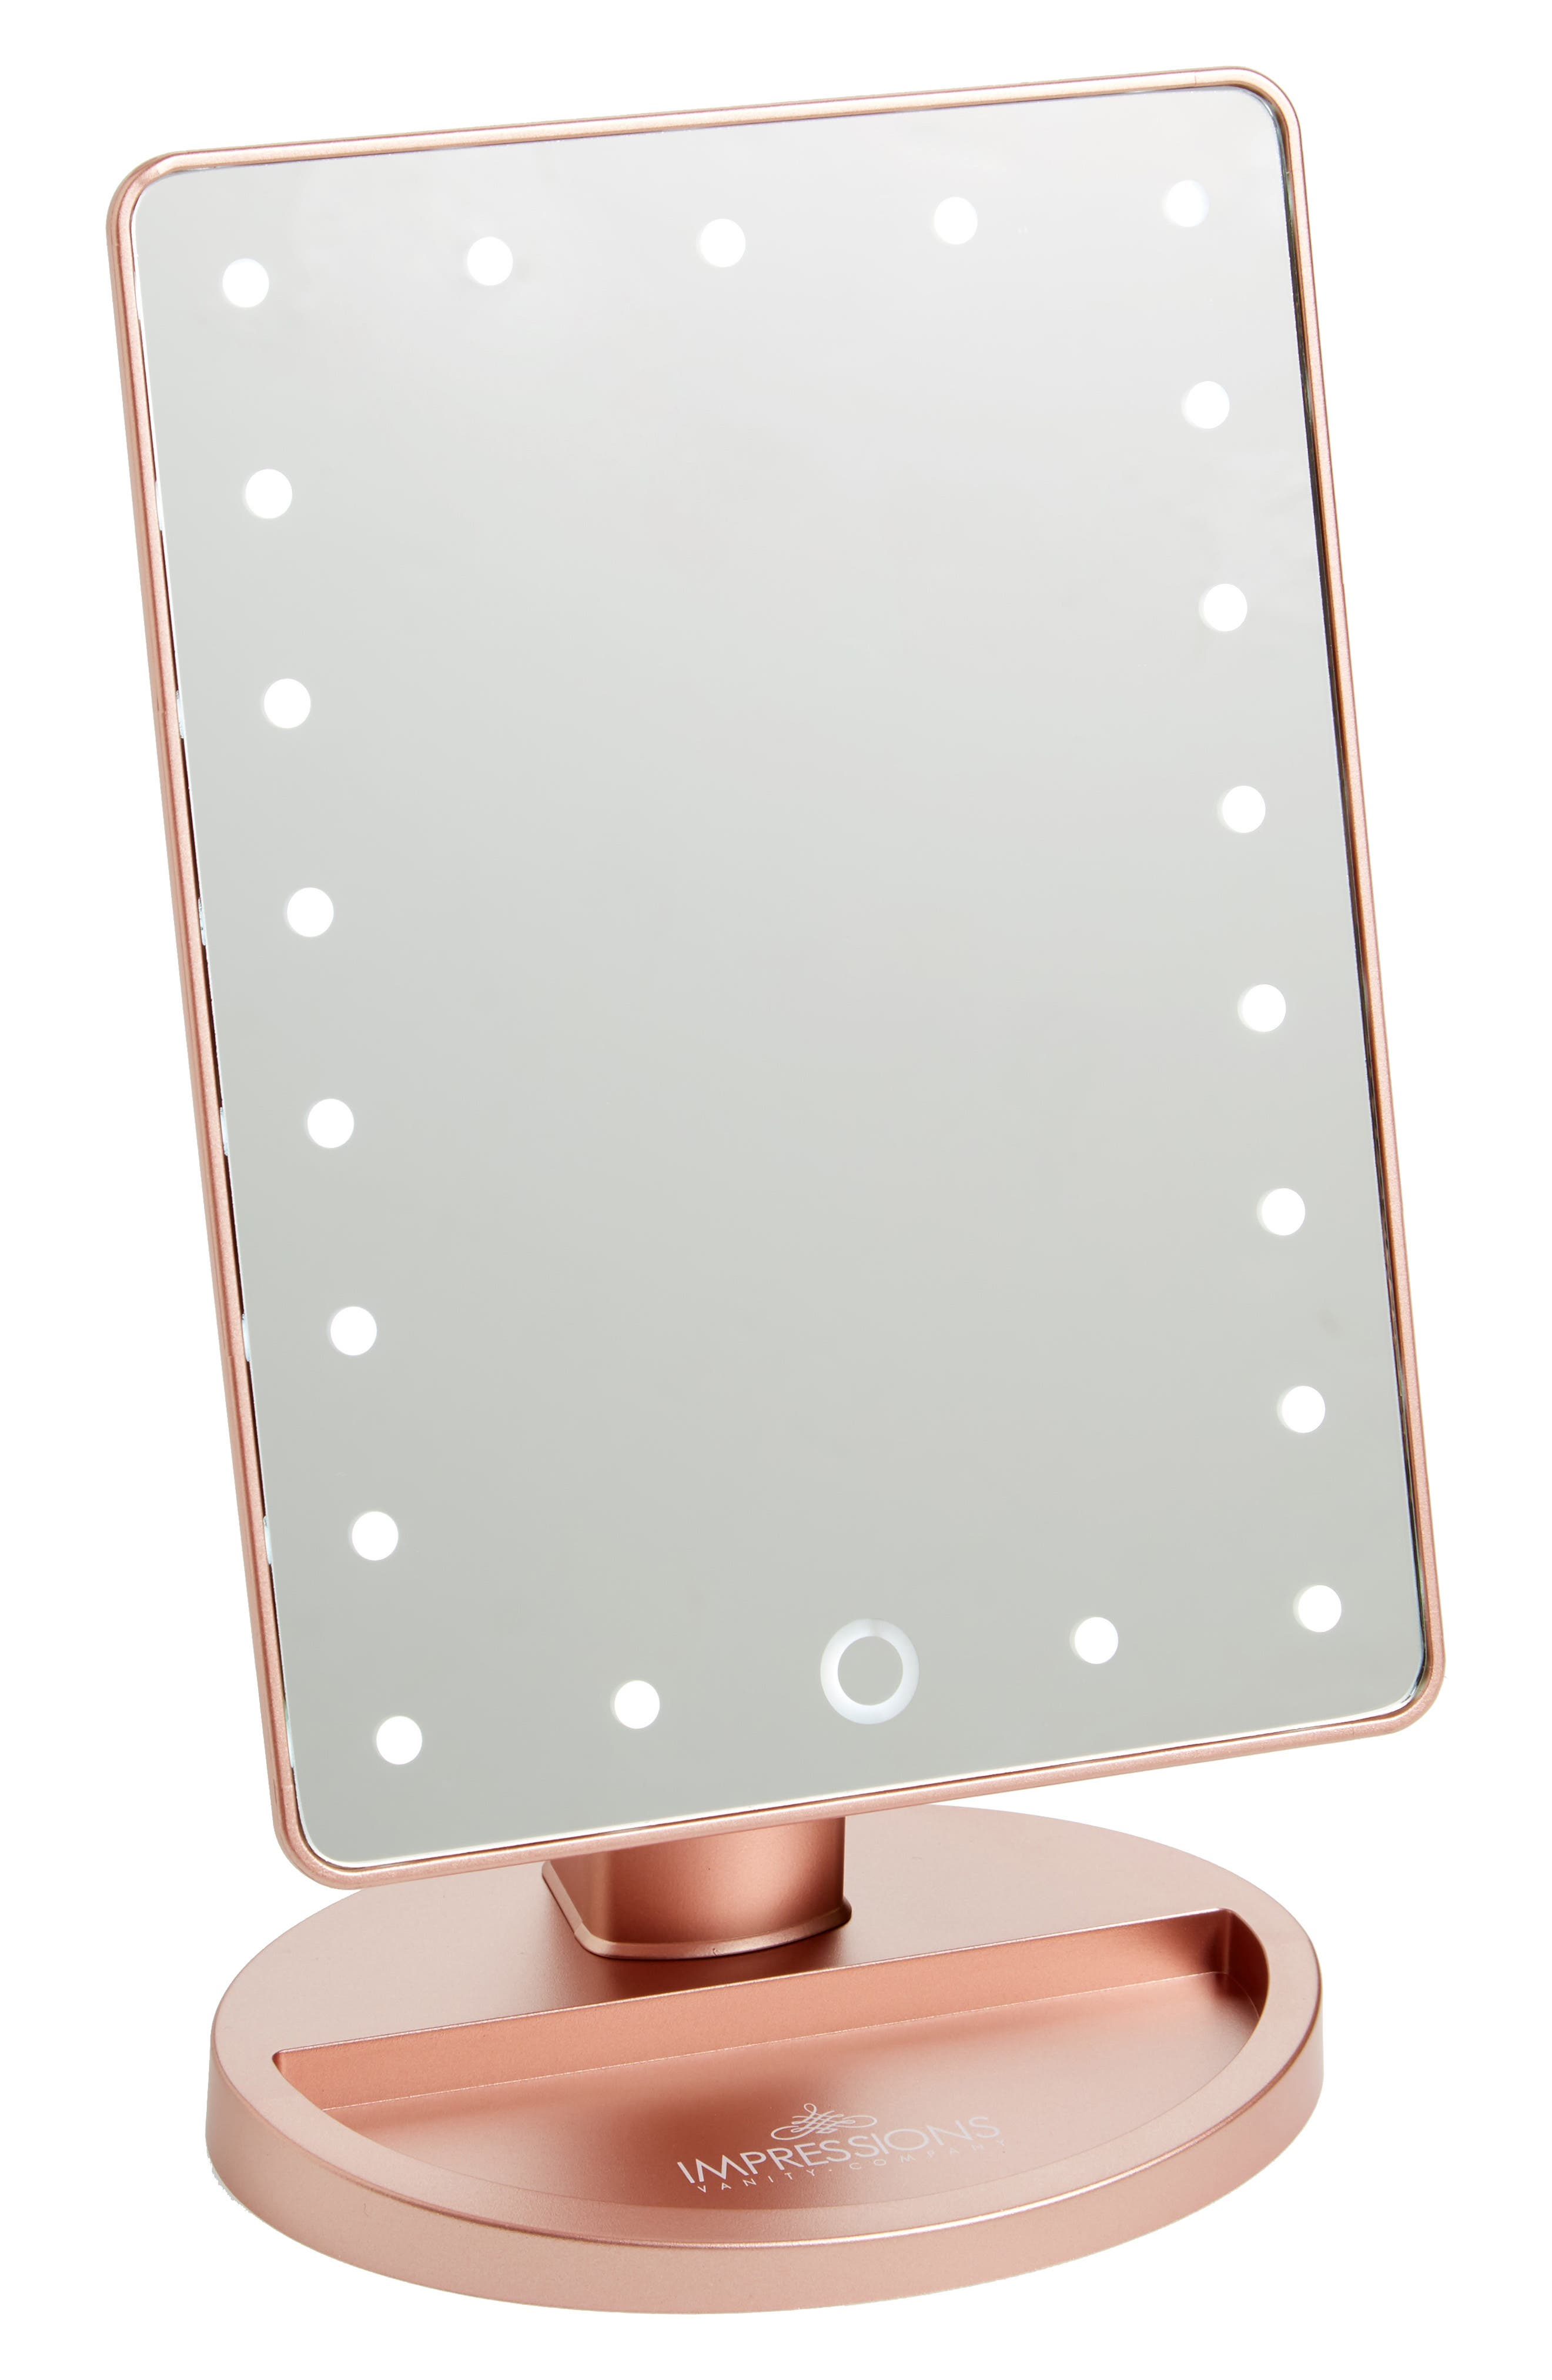 Alternate Image 1 Selected - Impressions Vanity Co. Touch 2.0 LED Vanity Mirror